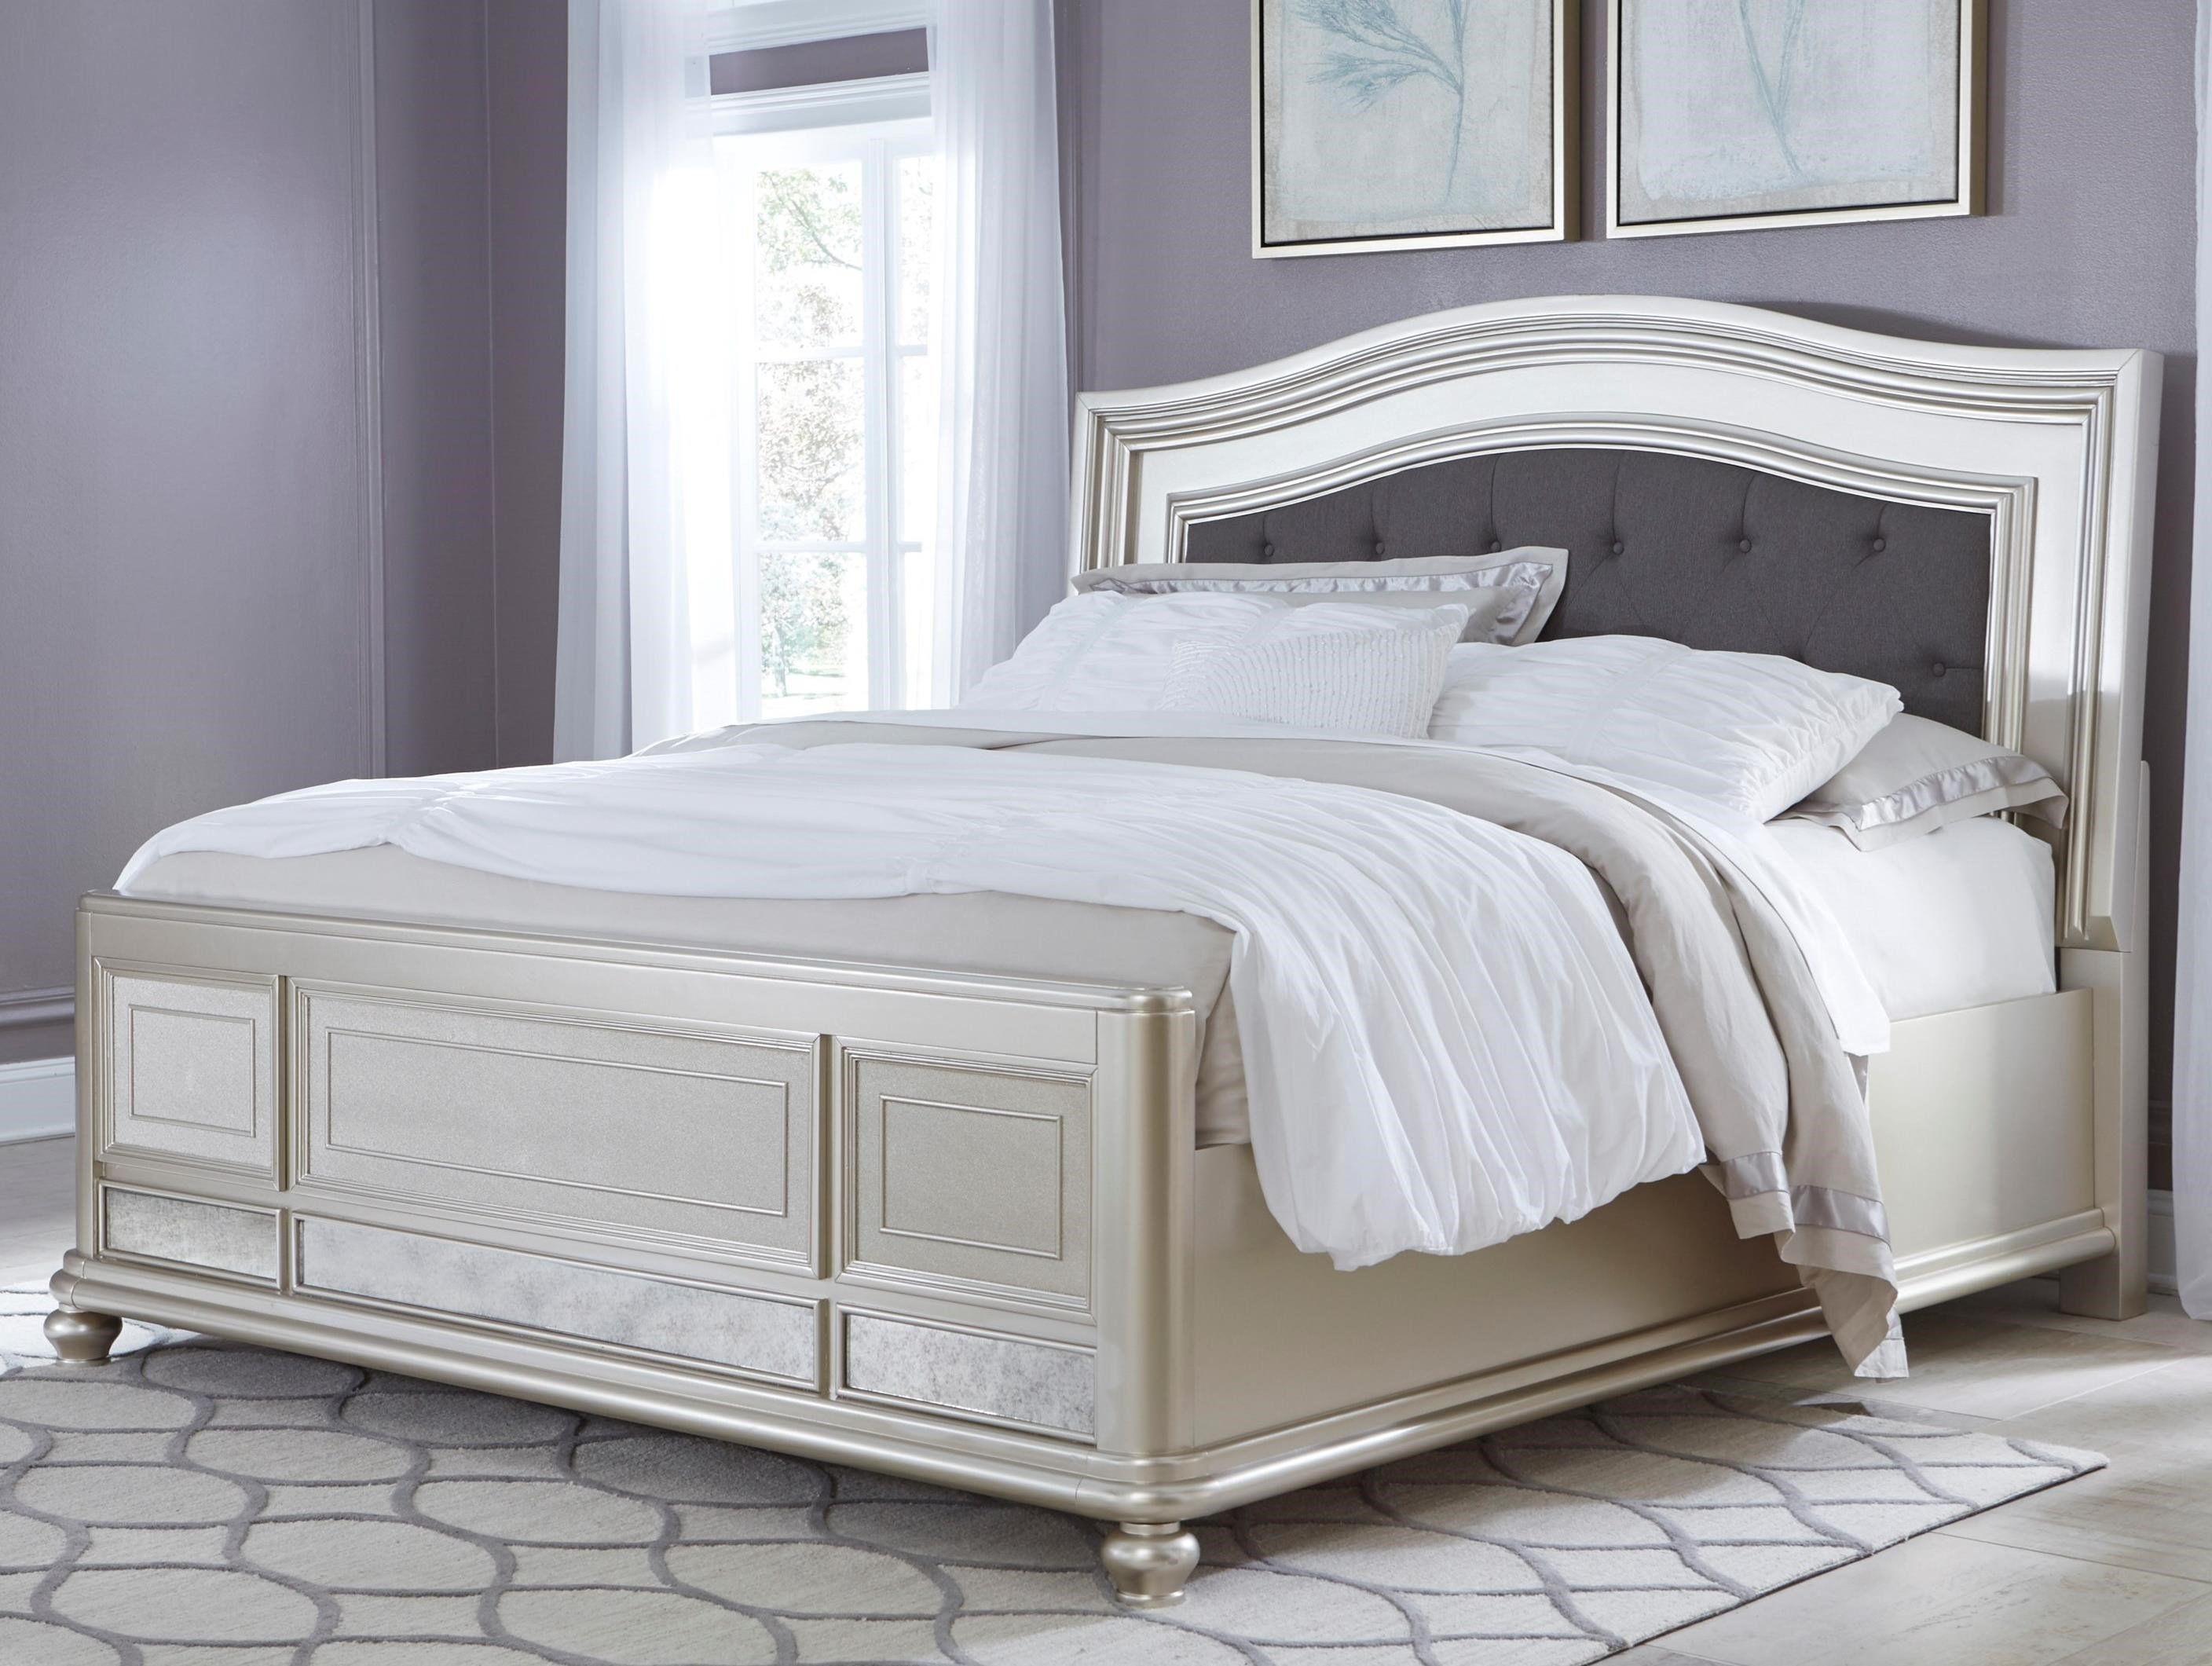 Signature Design By Ashley Coralayne King Panel Bed With Arched Upholstered Headboard And Silver